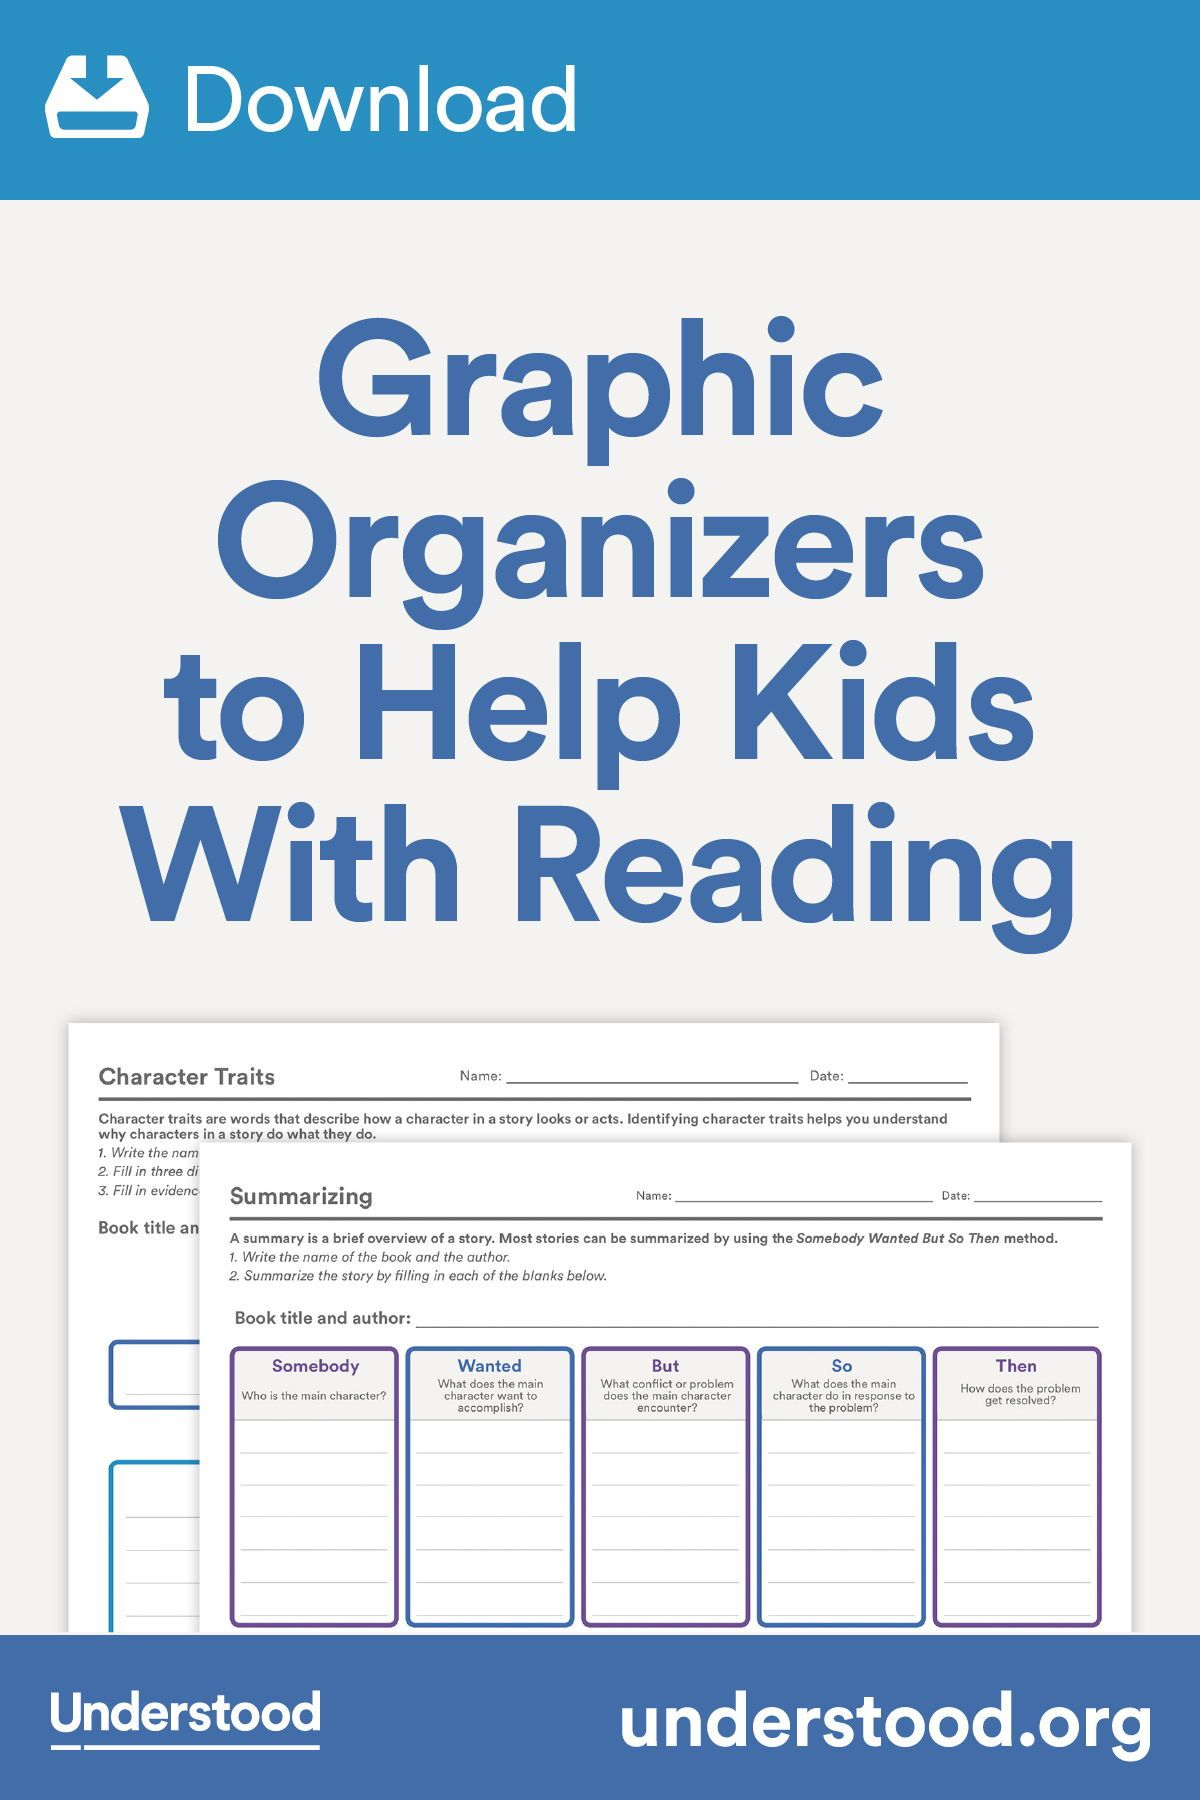 Download Graphic Organizers To Help Kids With Reading